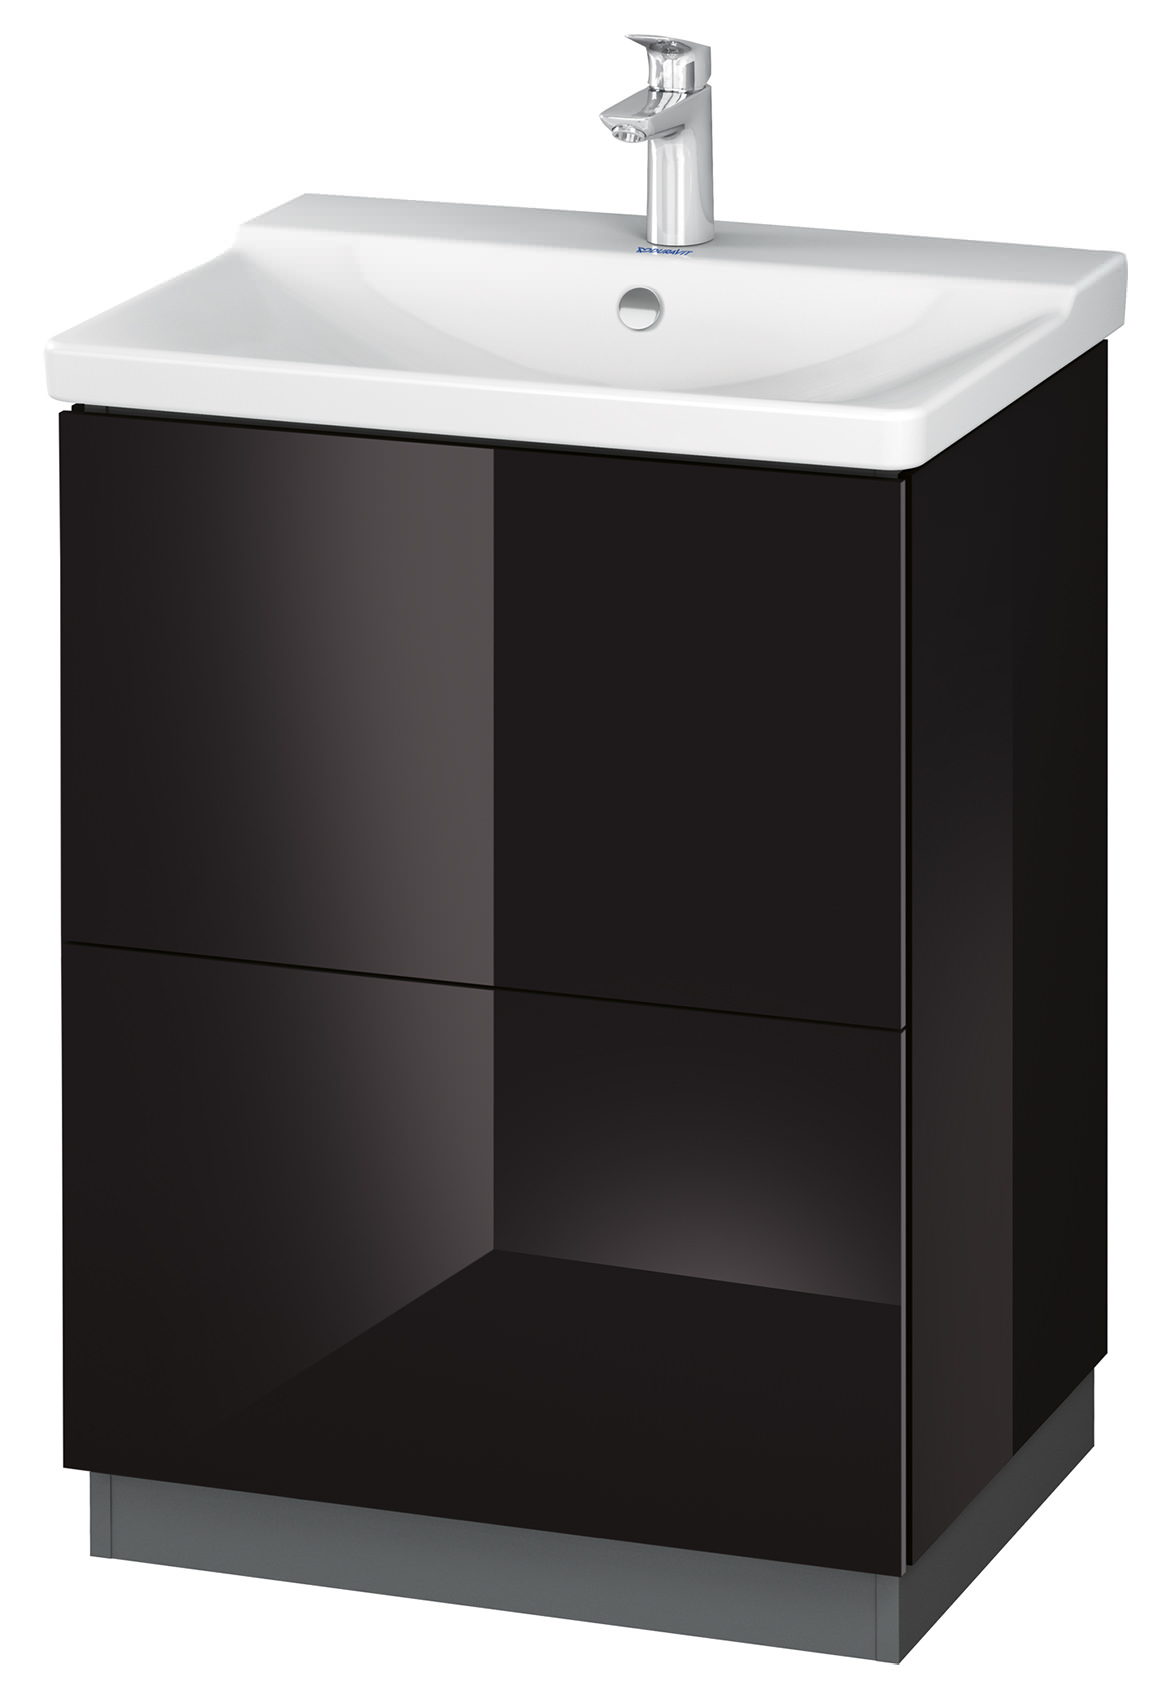 duravit l cube 620mm floor standing vanity unit with plinth panel. Black Bedroom Furniture Sets. Home Design Ideas